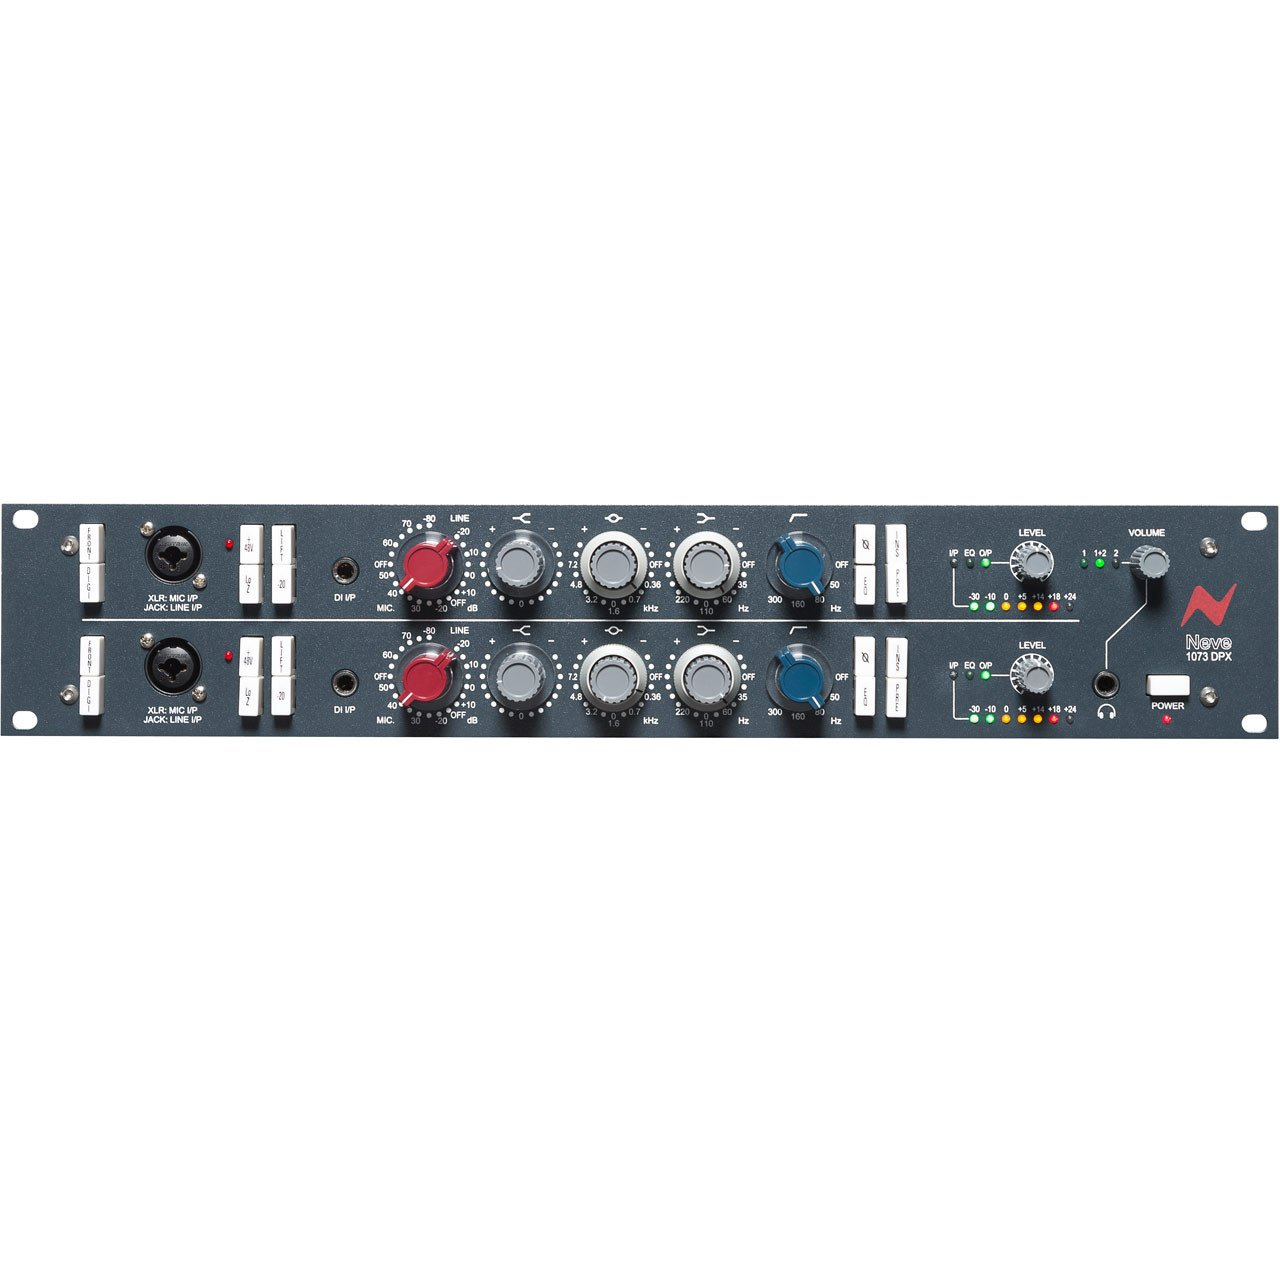 Preamps/Channel Strips - Neve AMS 1073DPX Dual Preamp & EQ